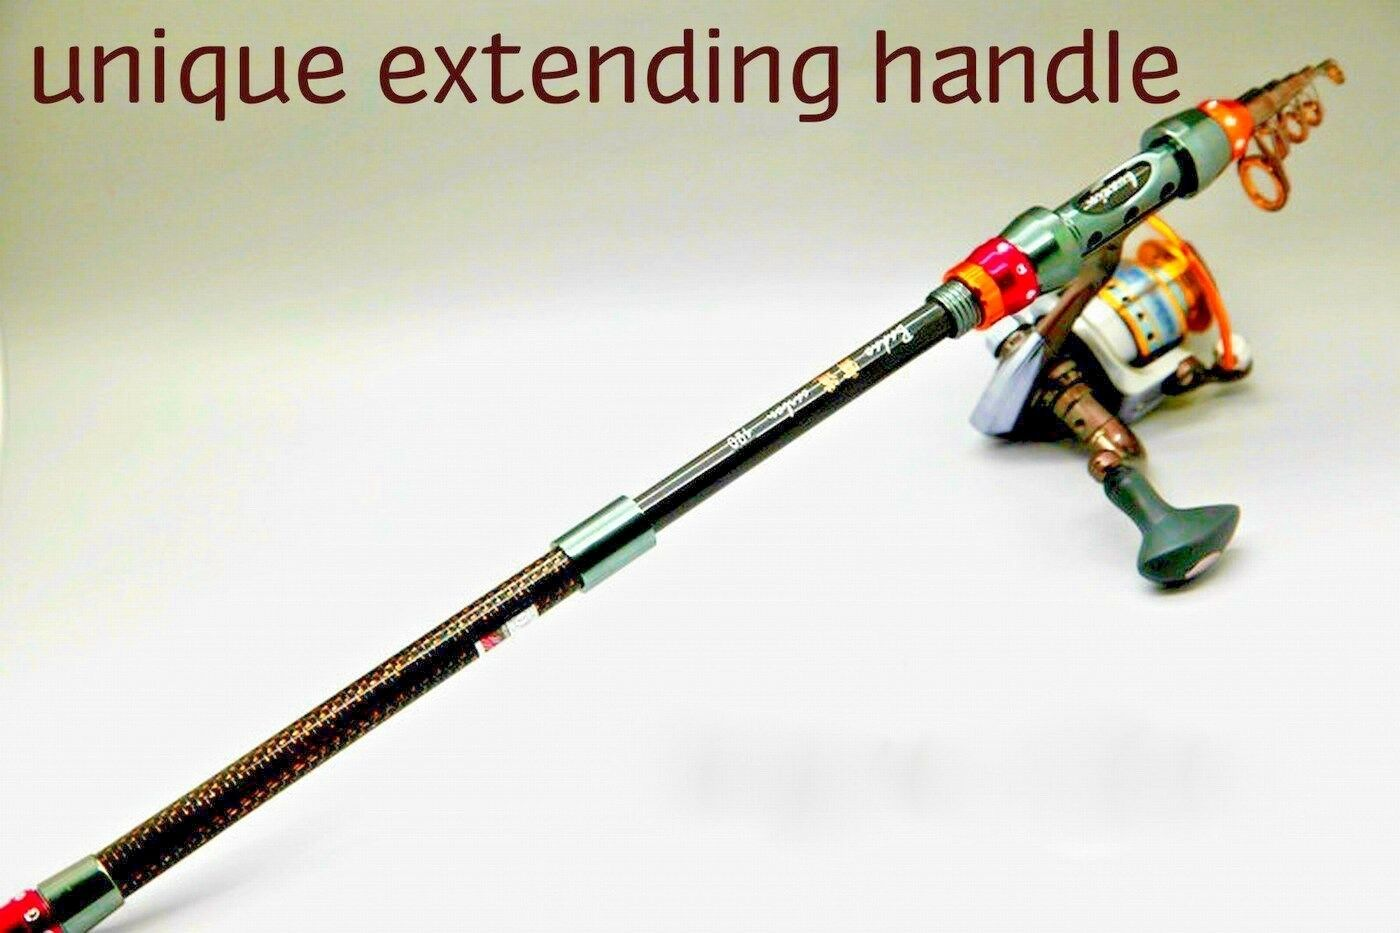 BADEO 2.1M Telescopic Rod & Reel   ideal for  travel, holidays   great xmas gift  we take customers as our god